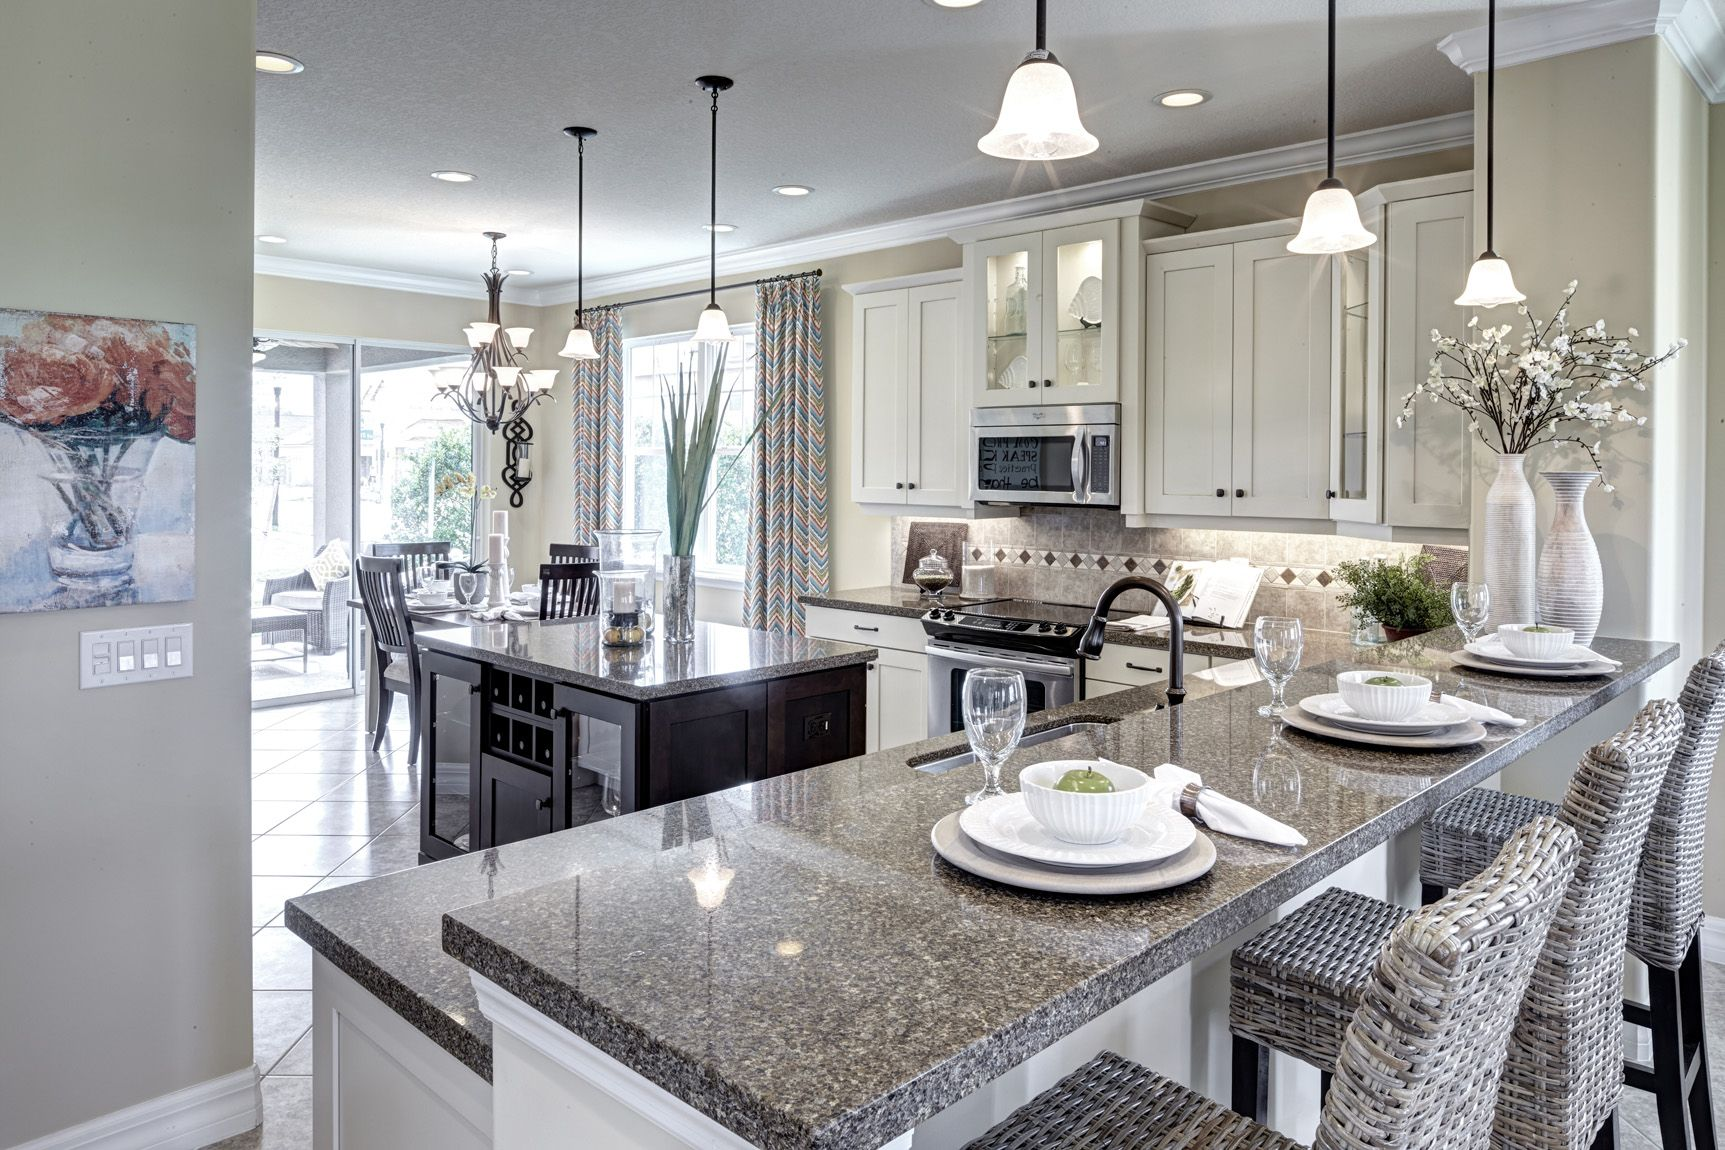 Charmant Elegant Lighting Makes For An Elegant Kitchen. Our Exquisite Newbury Model,  Millennia Park, Orlando. #kitchens #mattamyhomes